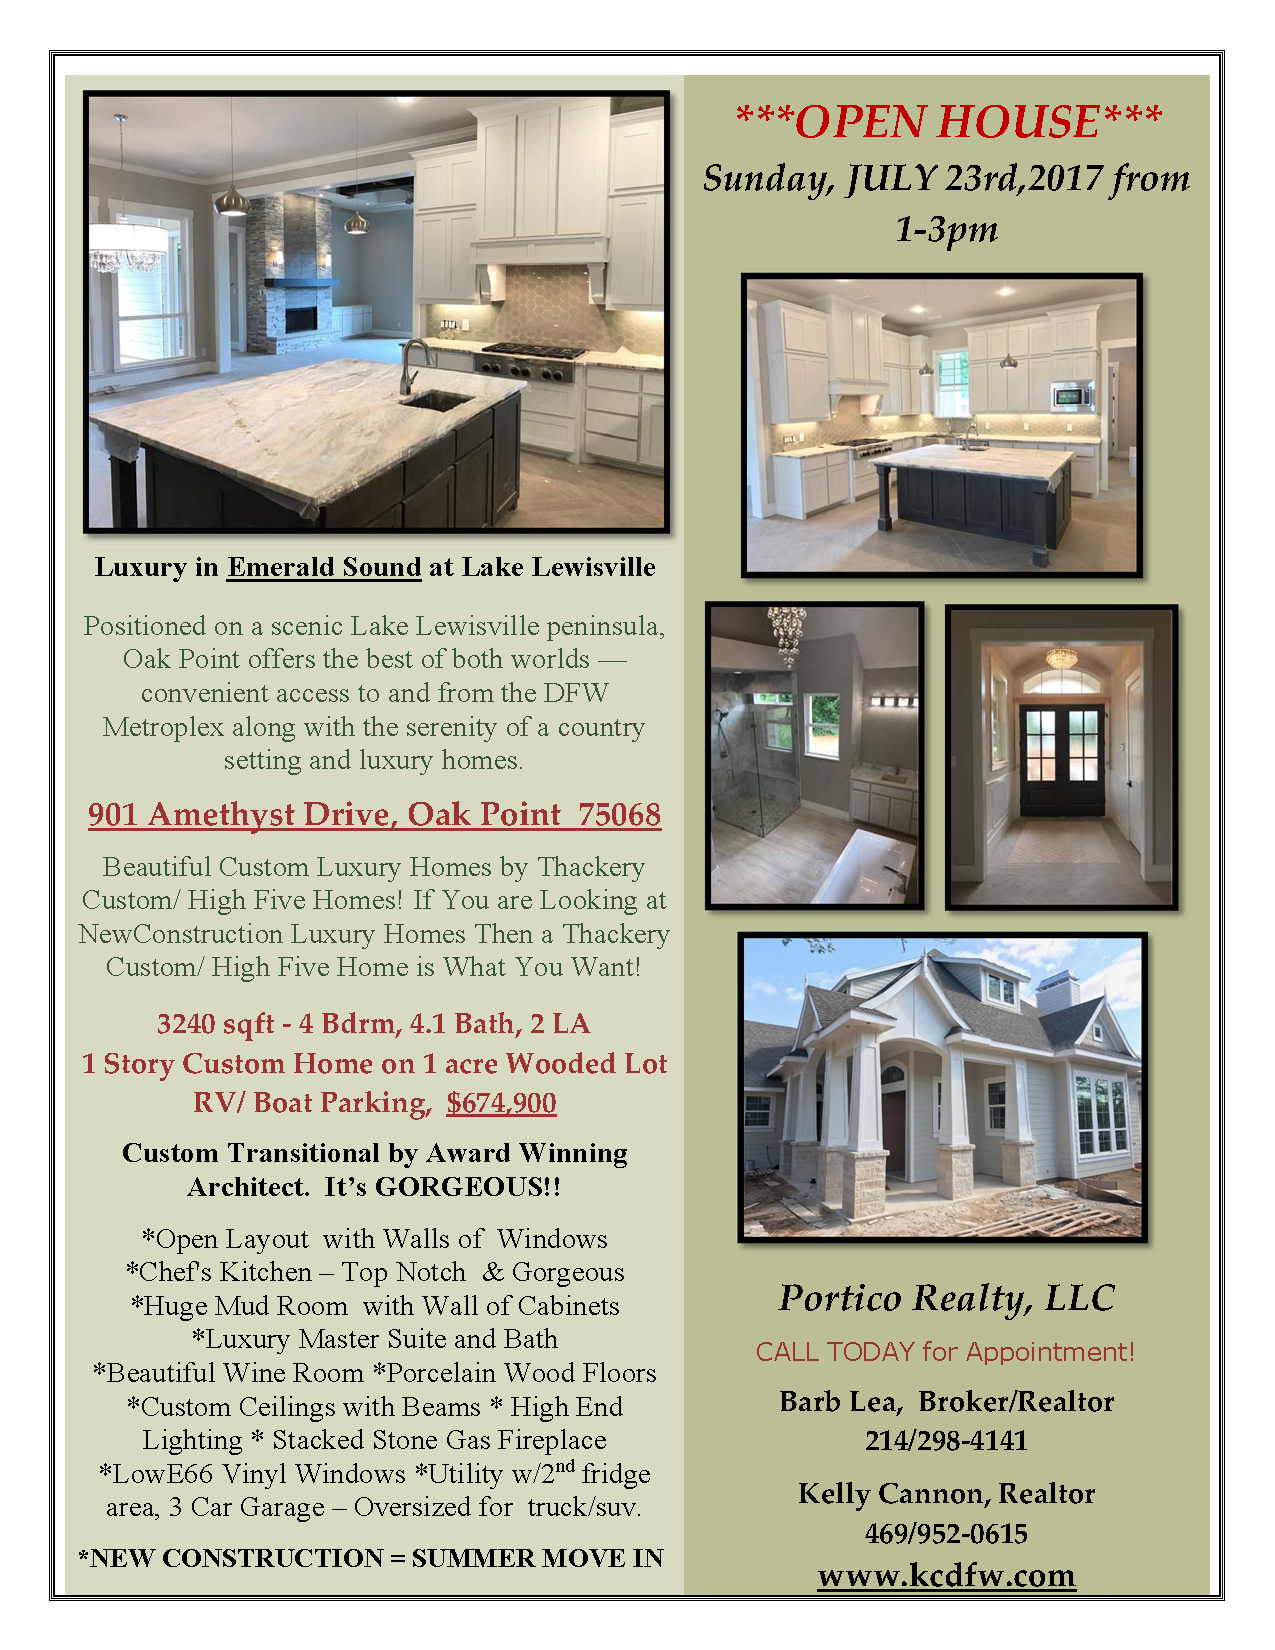 My Listings And Open Houses